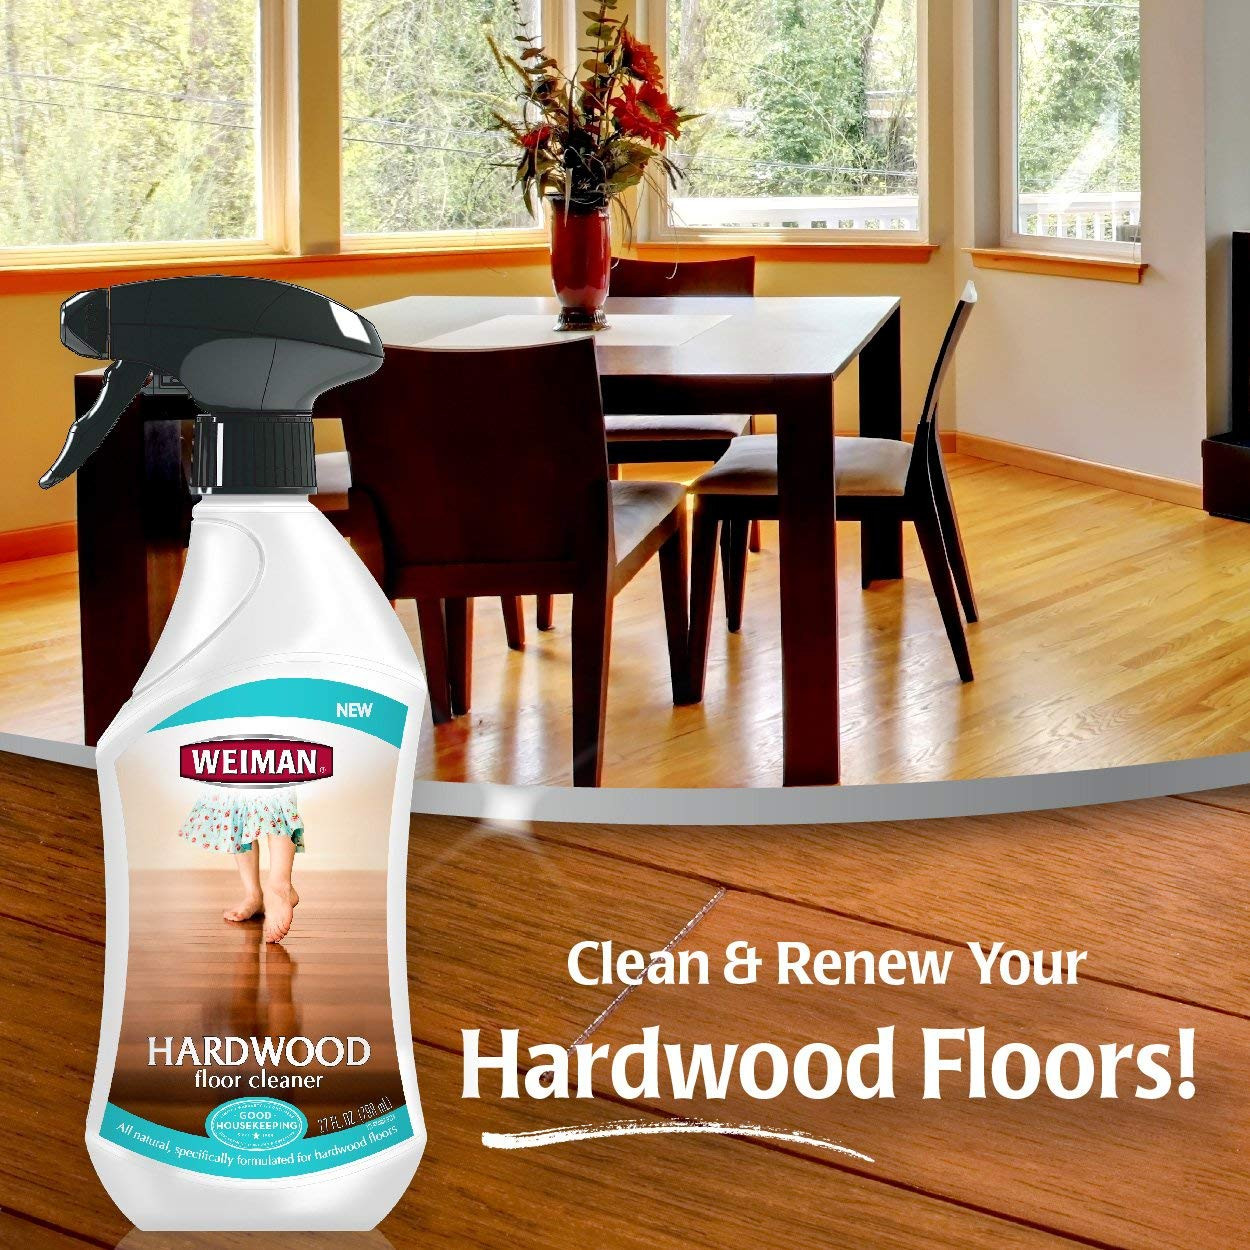 how to clean vinyl hardwood floors of amazon com weiman hardwood floor cleaner surface safe no harsh for amazon com weiman hardwood floor cleaner surface safe no harsh scent safe for use around kids and pets residue free 27 oz trigger home kitchen